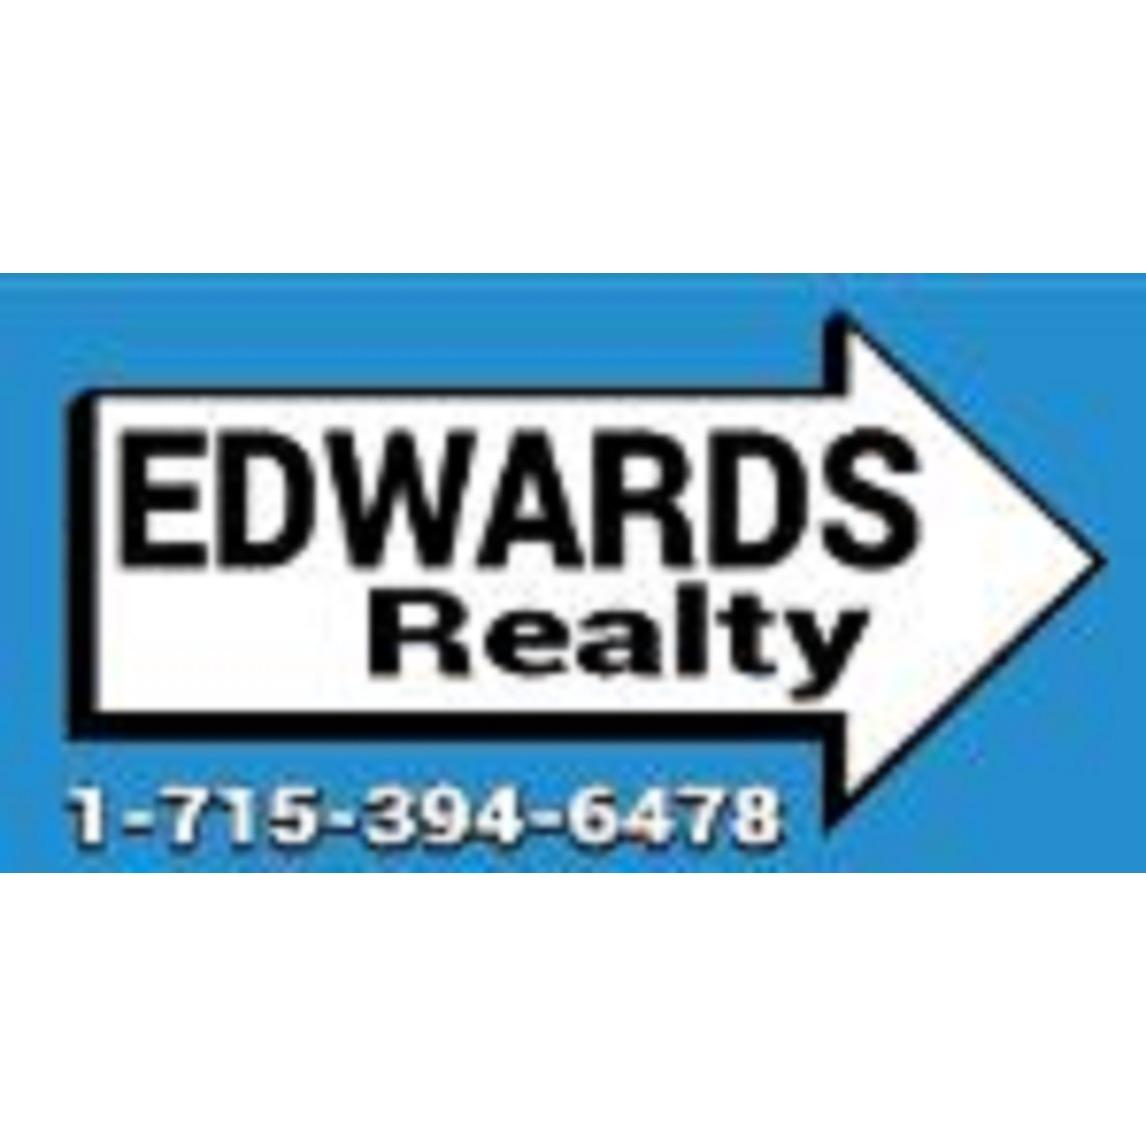 Edwards Realty